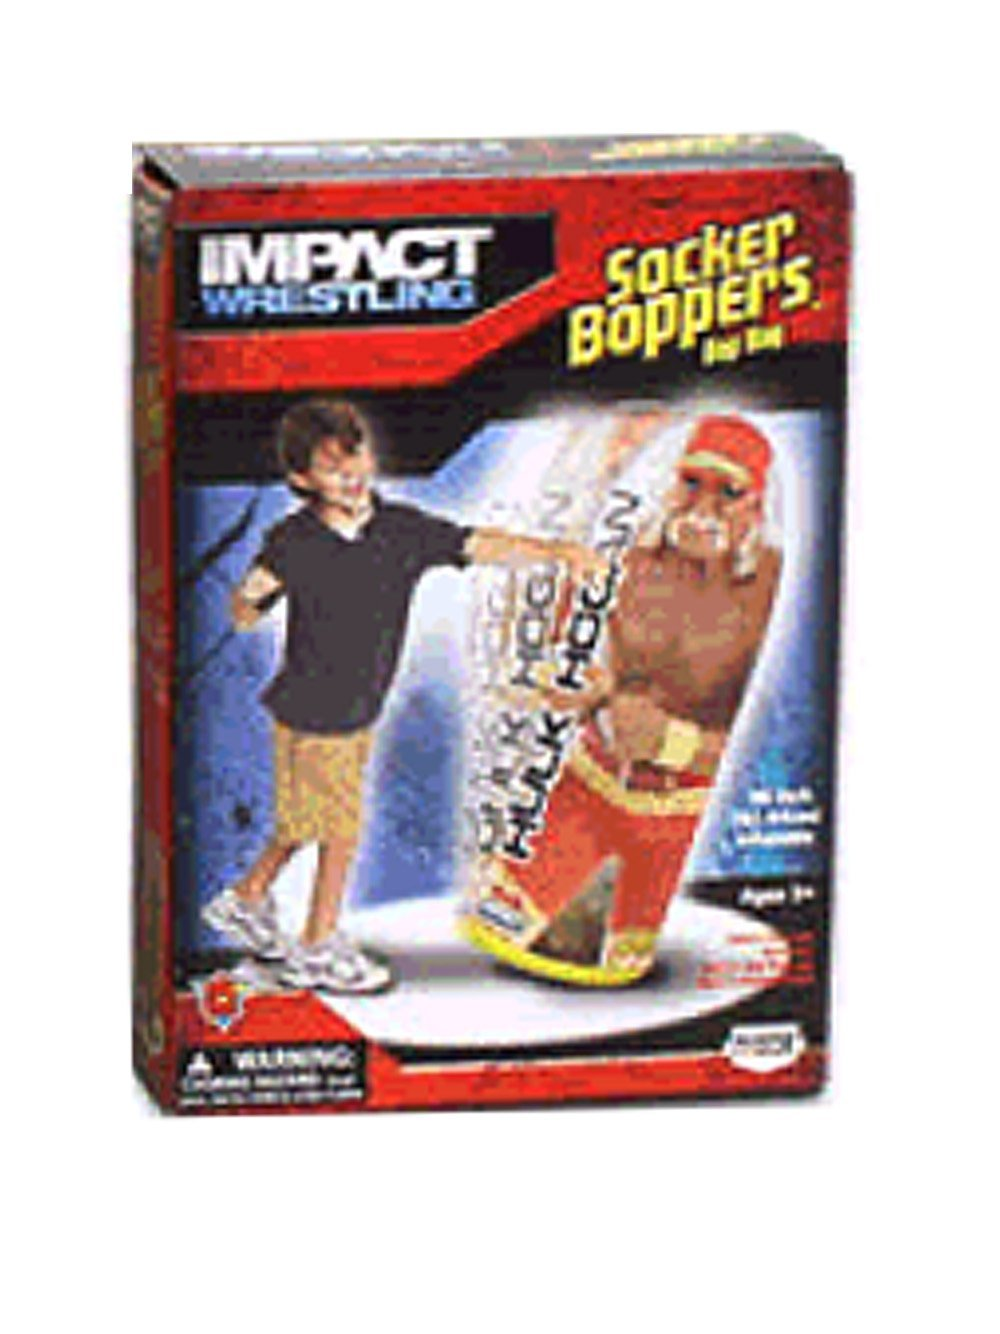 TNA Hulk Hogan bop bag